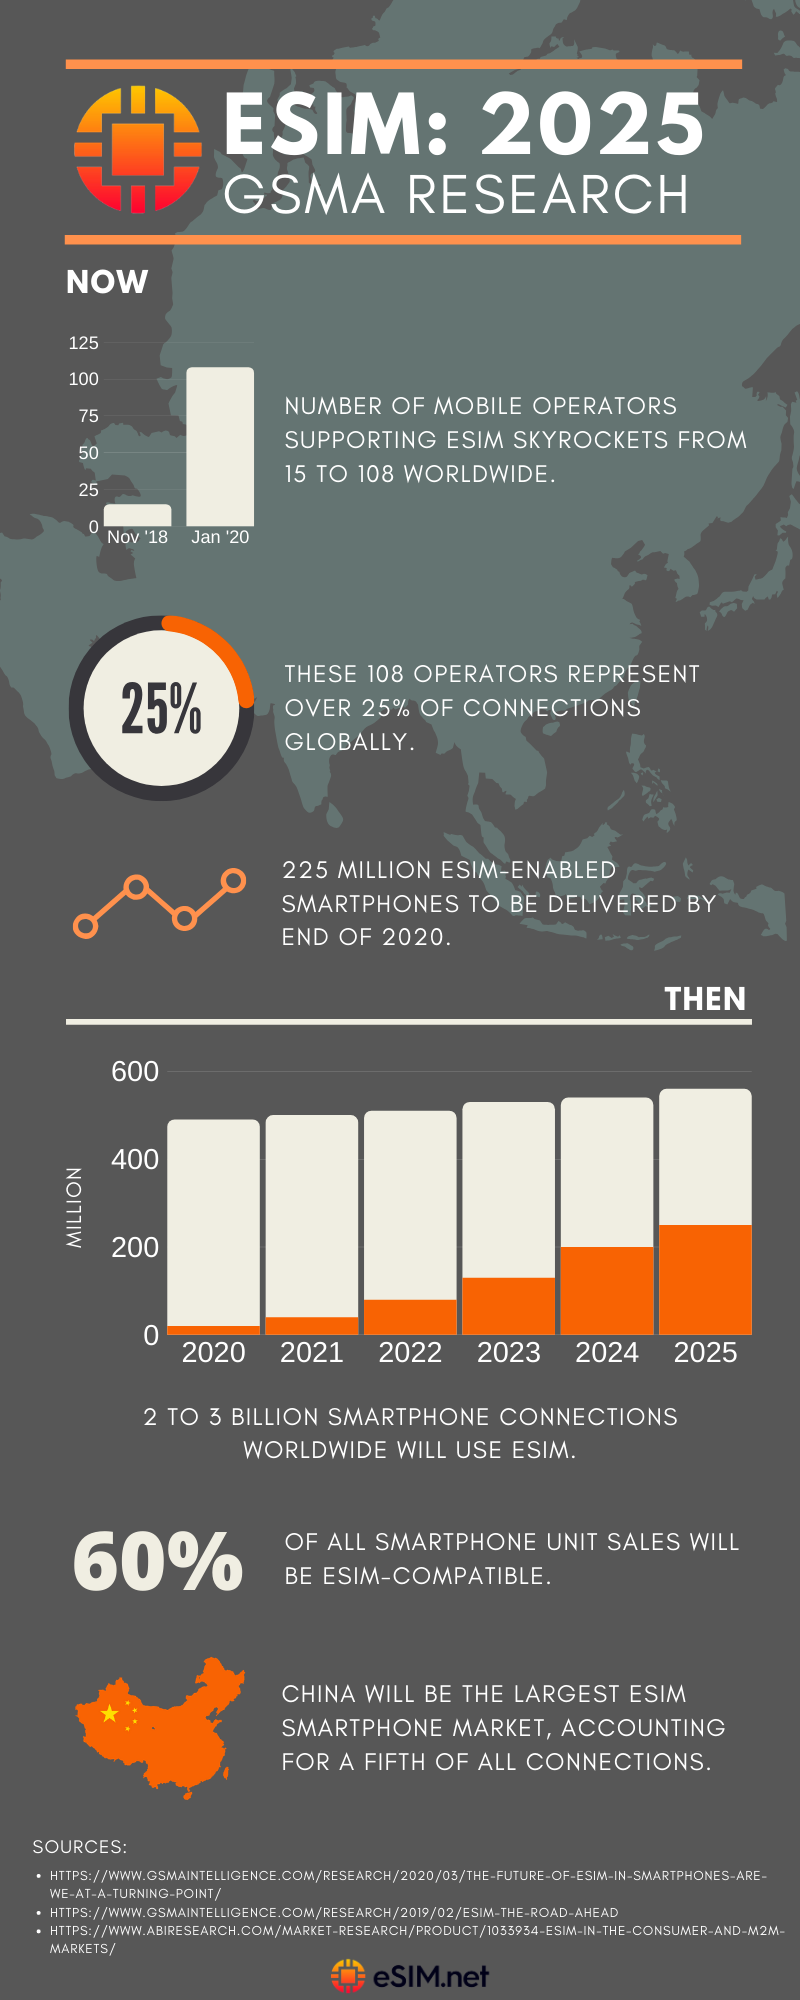 eSIM Trends and Insights for 2025 #infographic